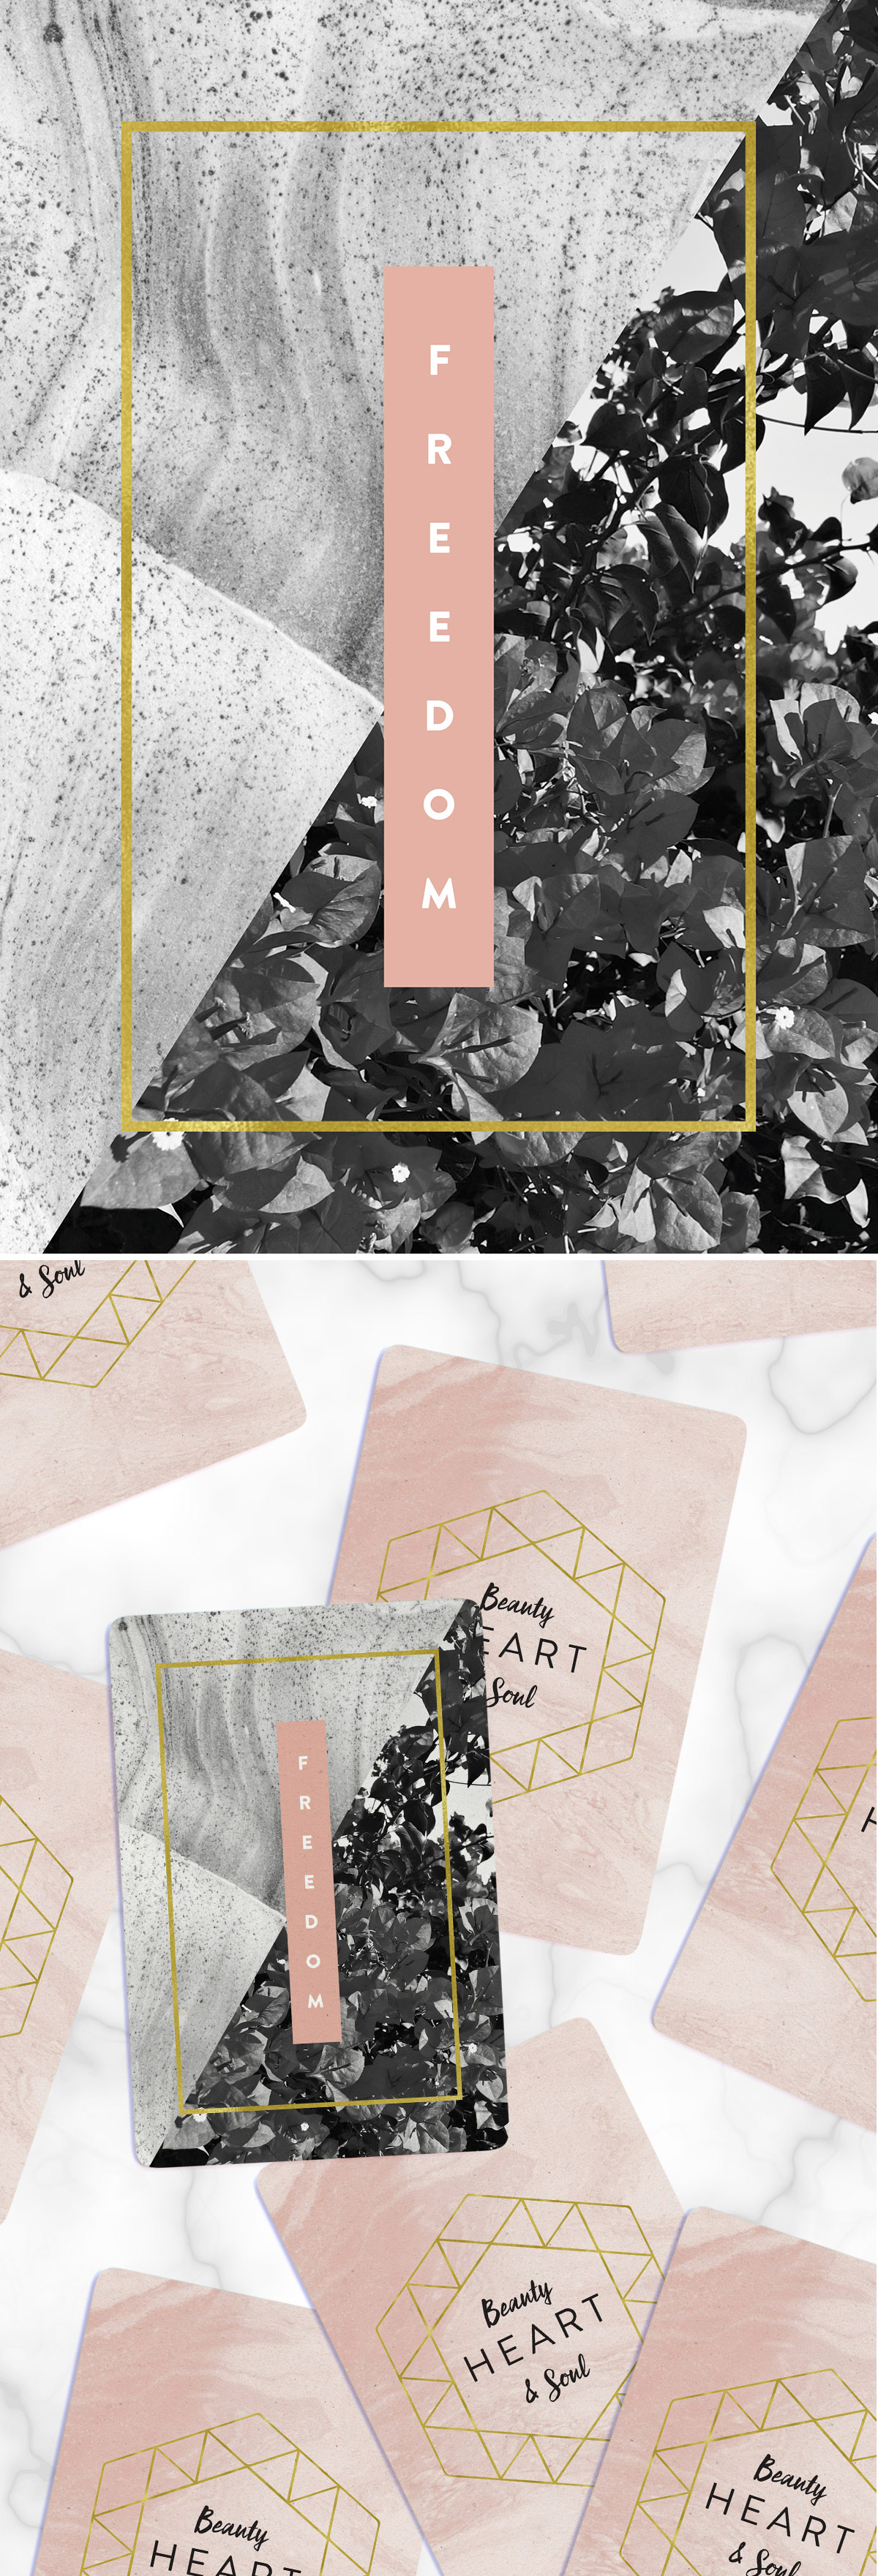 Branch | Olivine Atelier Daily Love Cards